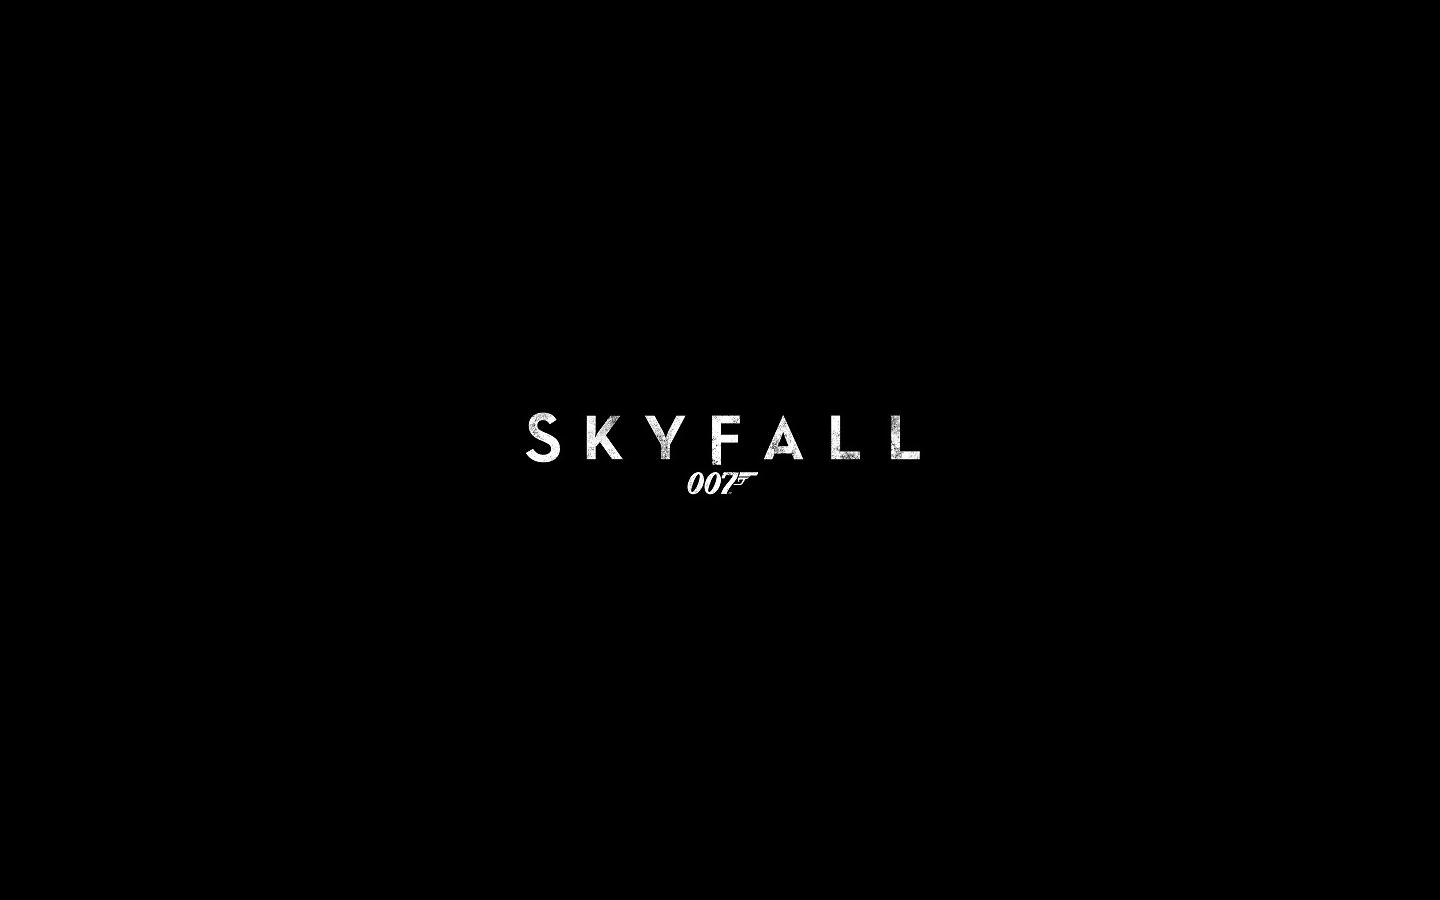 Skyfall 007 Movie Poster HD Wallpapers HD Wallpapers 1440x900